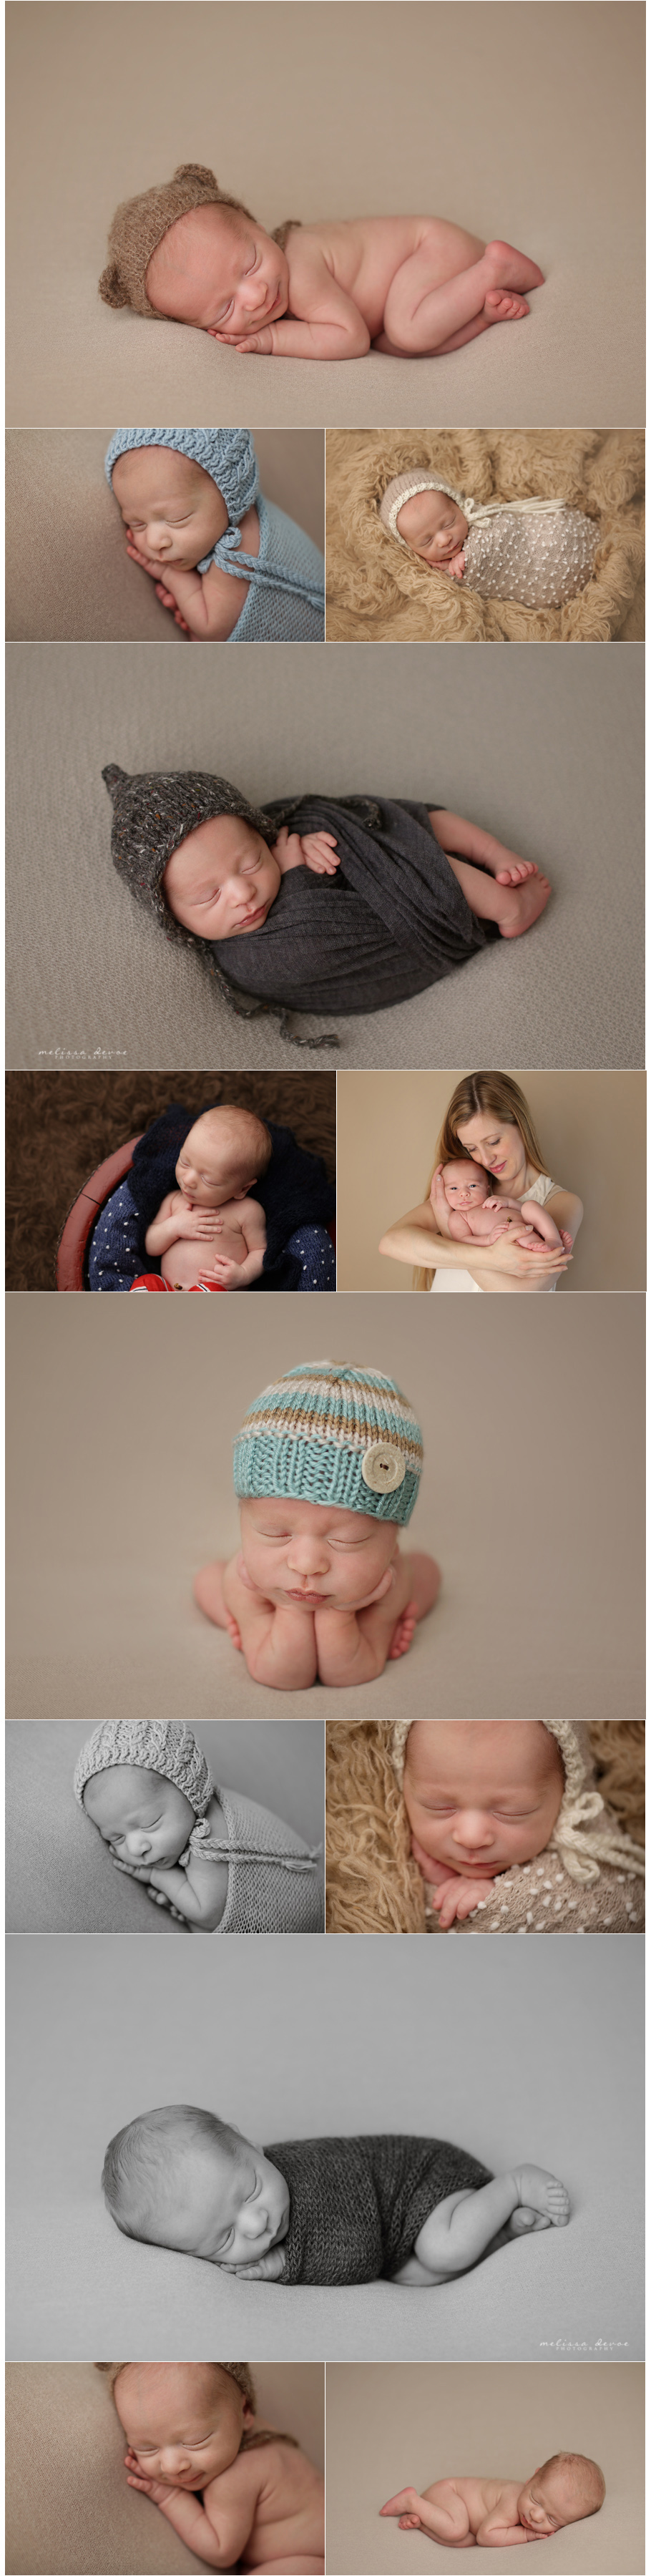 Raleigh Newborn Baby Photographer 1